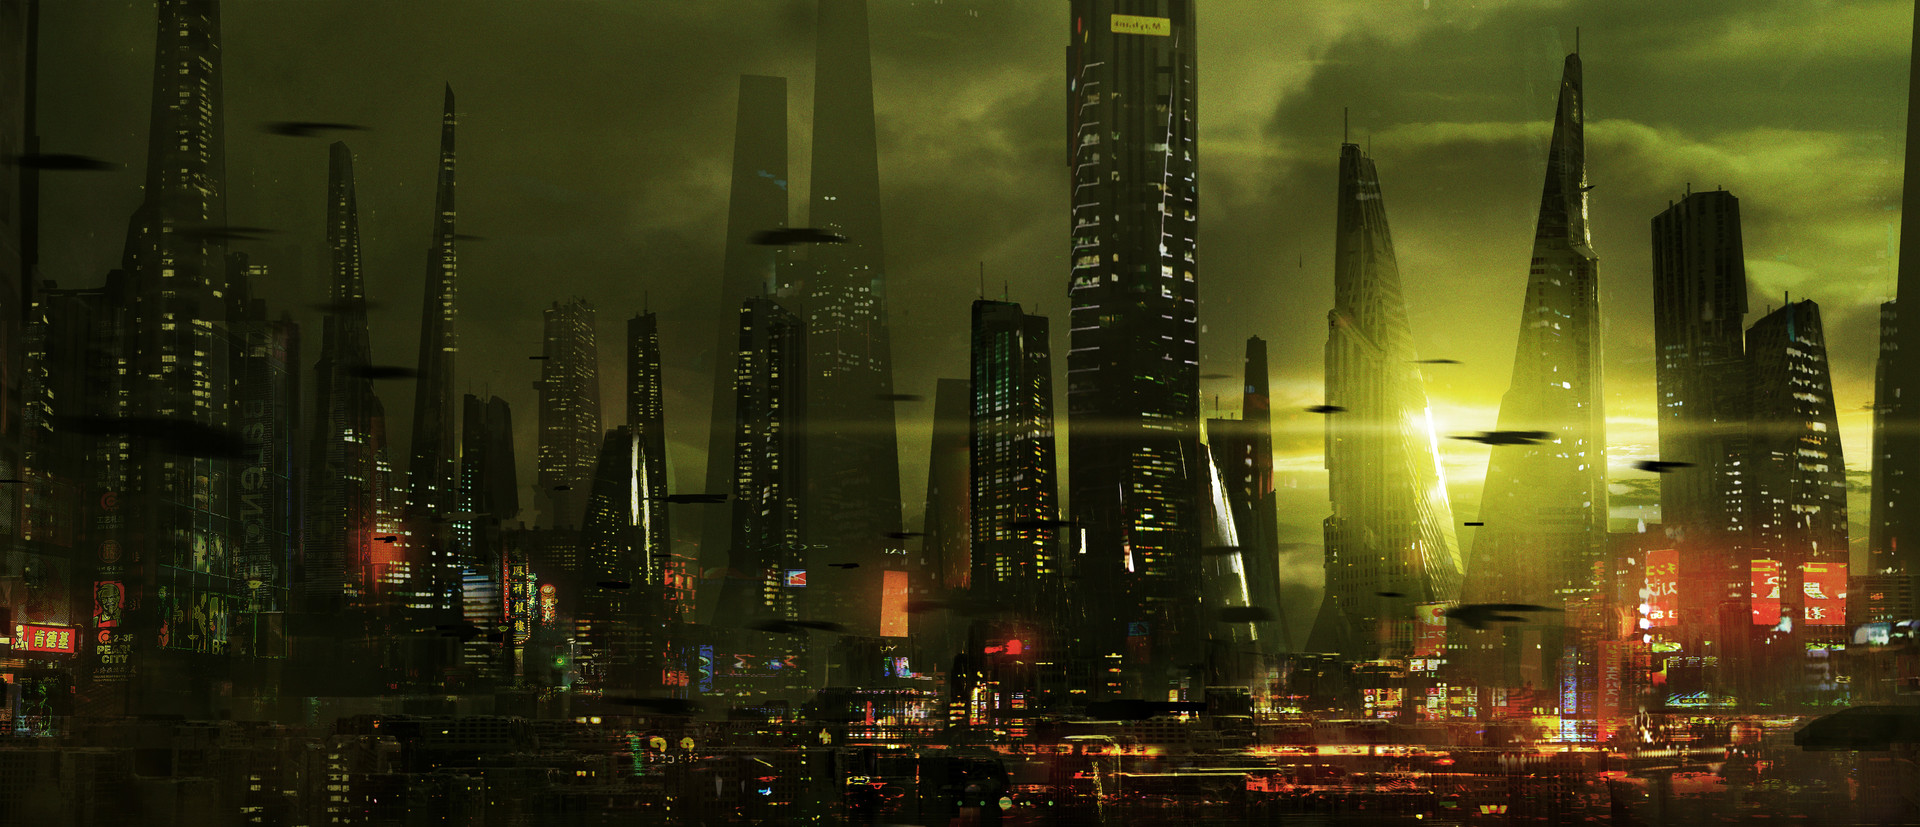 Duncan halleck scifi city